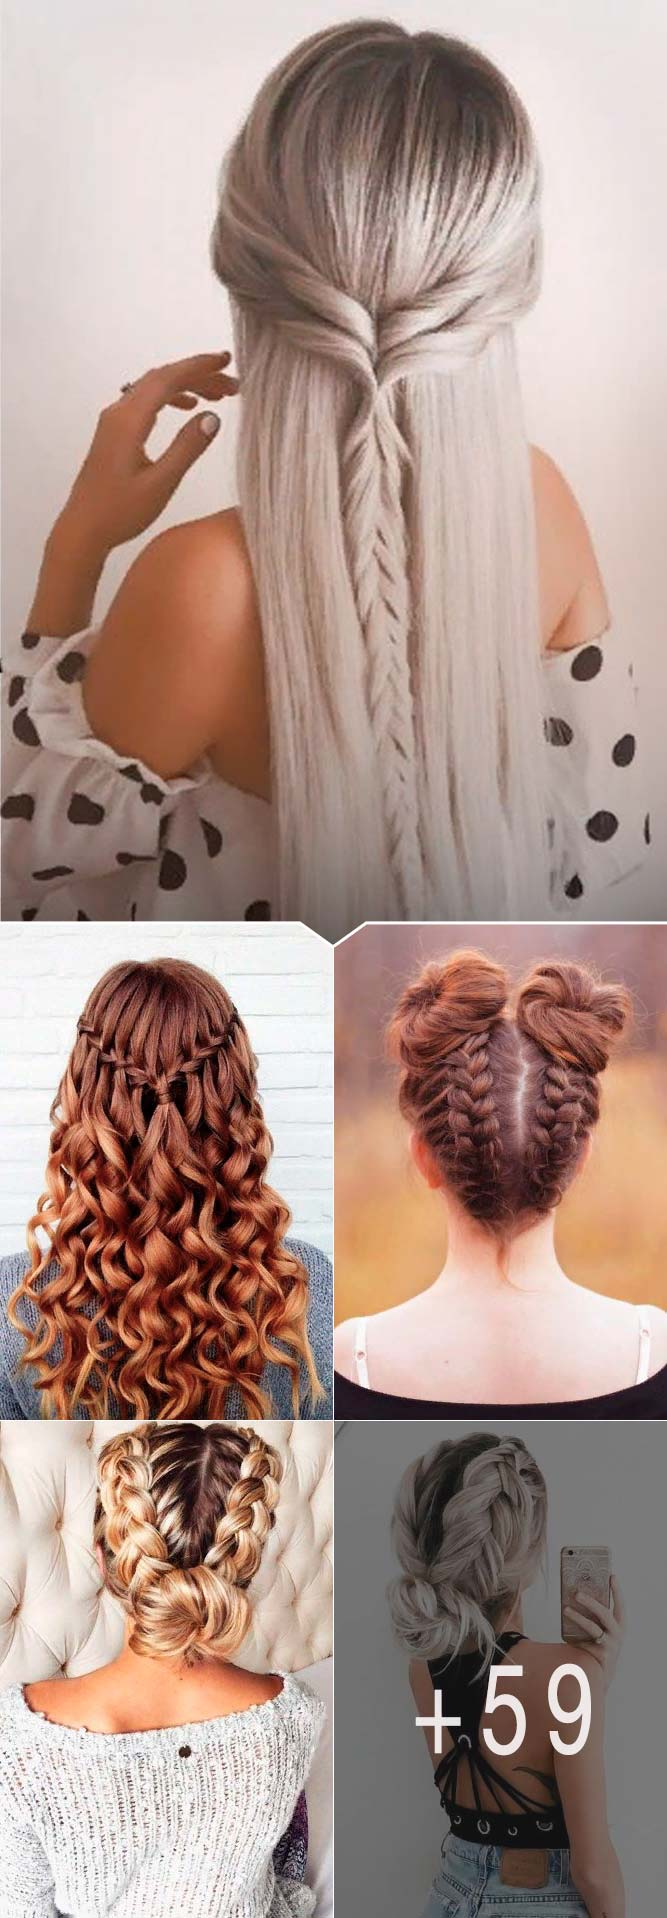 Amazing Braid Hairstyles for Party and Holidays